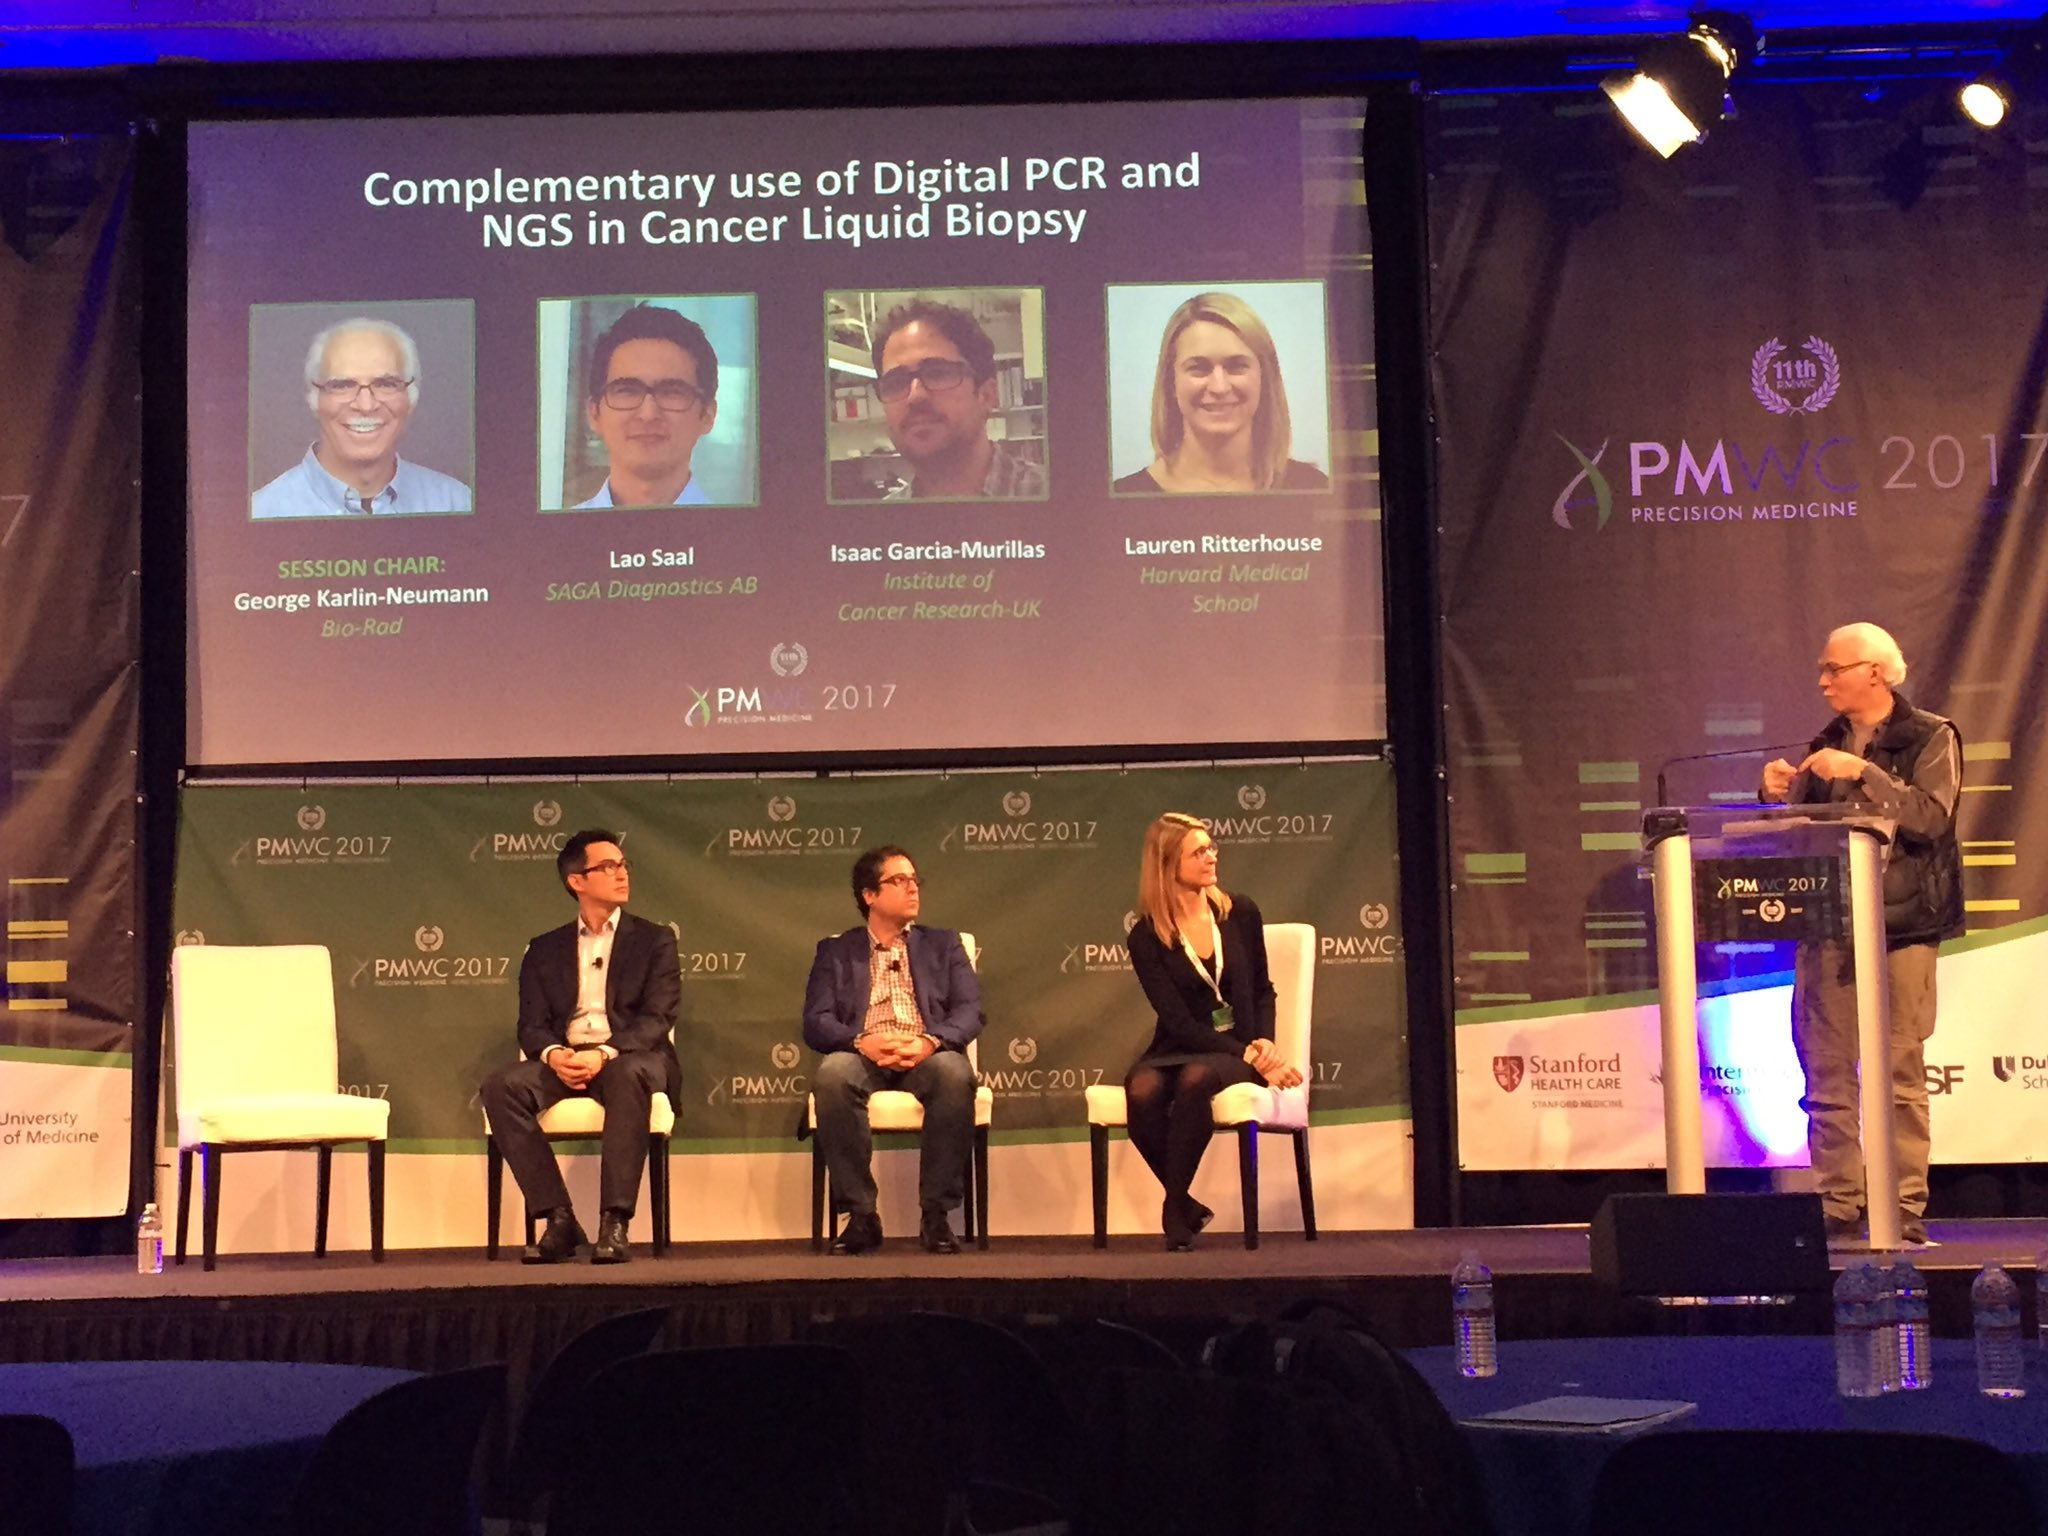 PCR  and NGS are powerful methods how will this better clinical approaches to treat cancer? Patients first!! #PMWC17 discussion  @PMWCintl https://t.co/MzkgdRpgqp